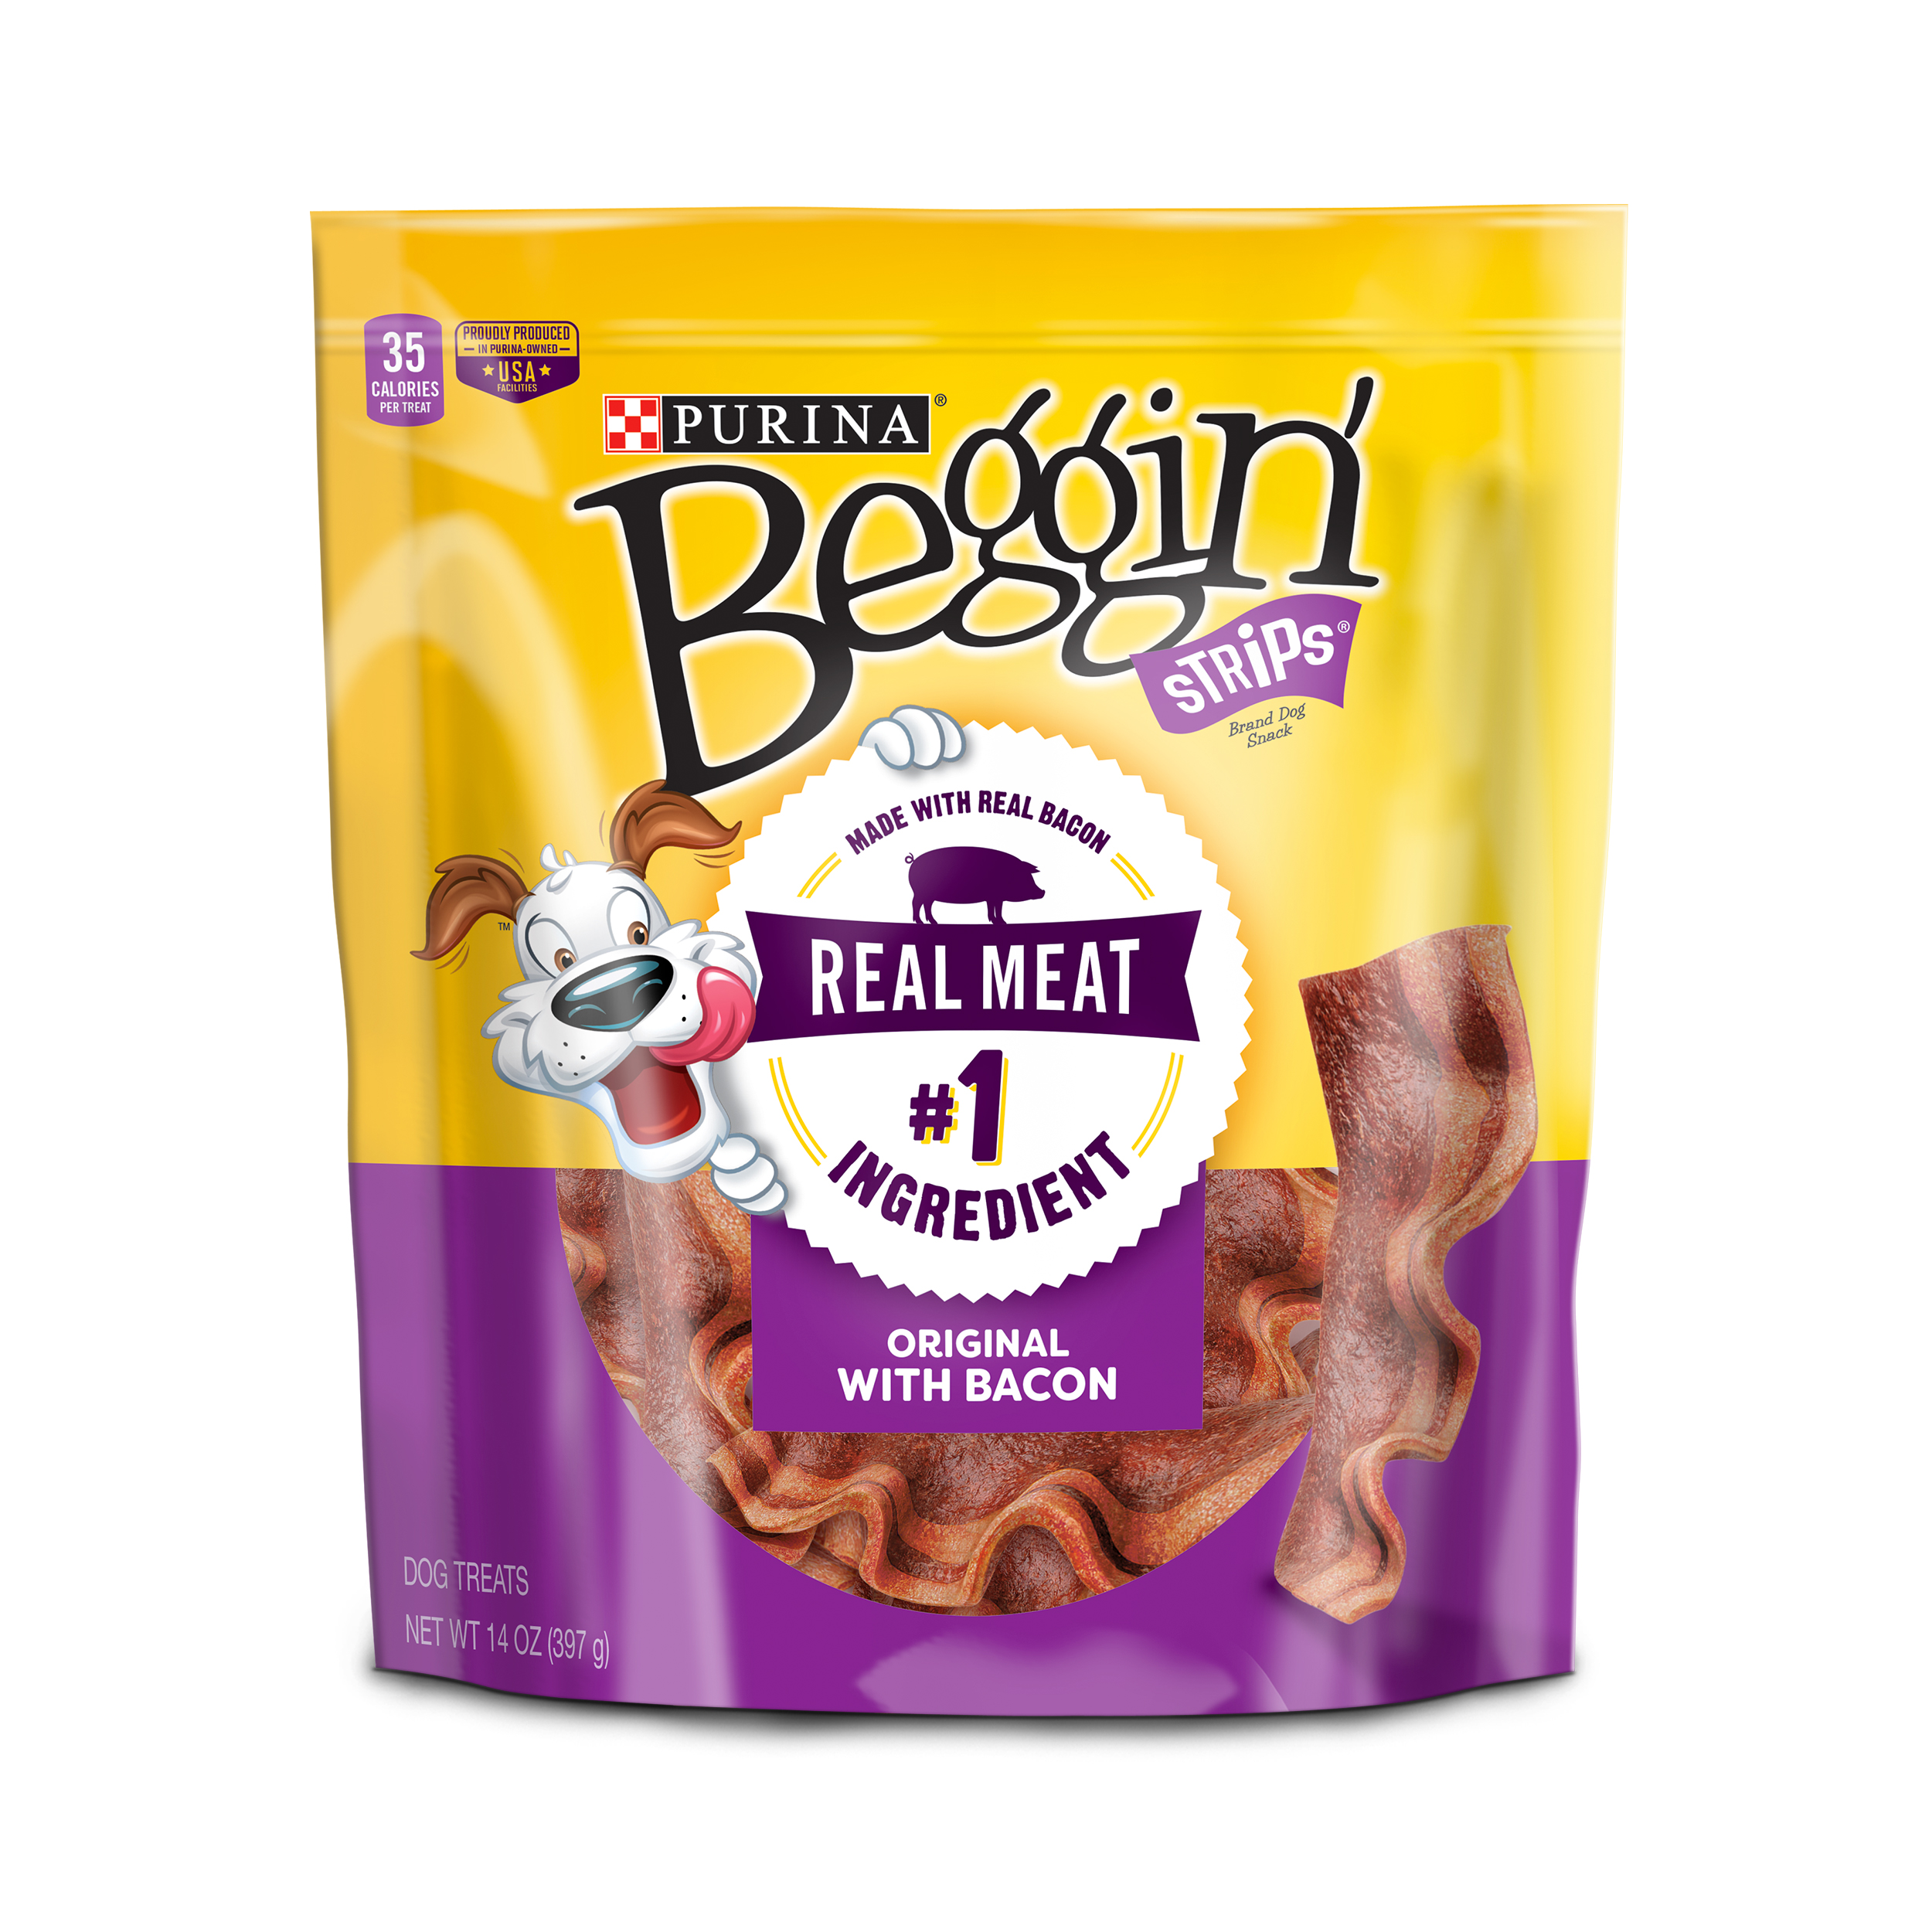 Purina Beggin' Strips Bacon Flavor Dog Treats - 14 oz. Pouch